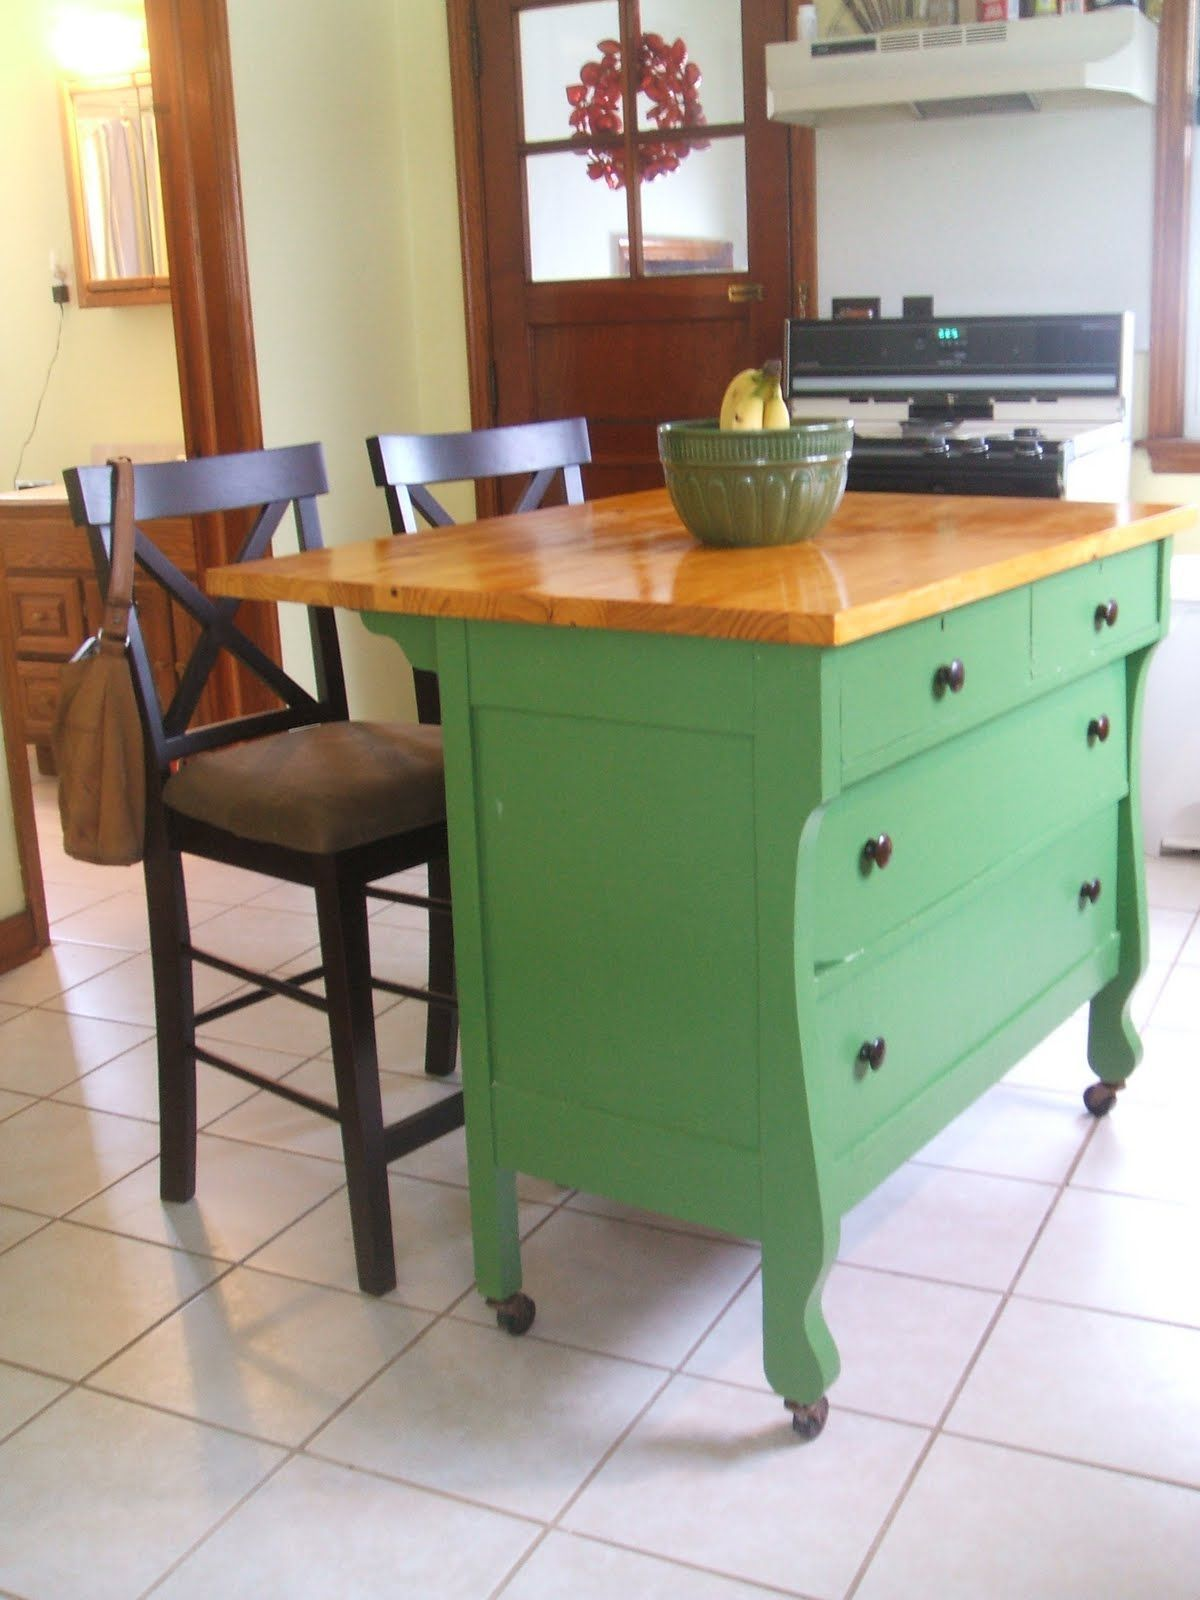 The Kitchen Island Would Also Provide Additional Space For